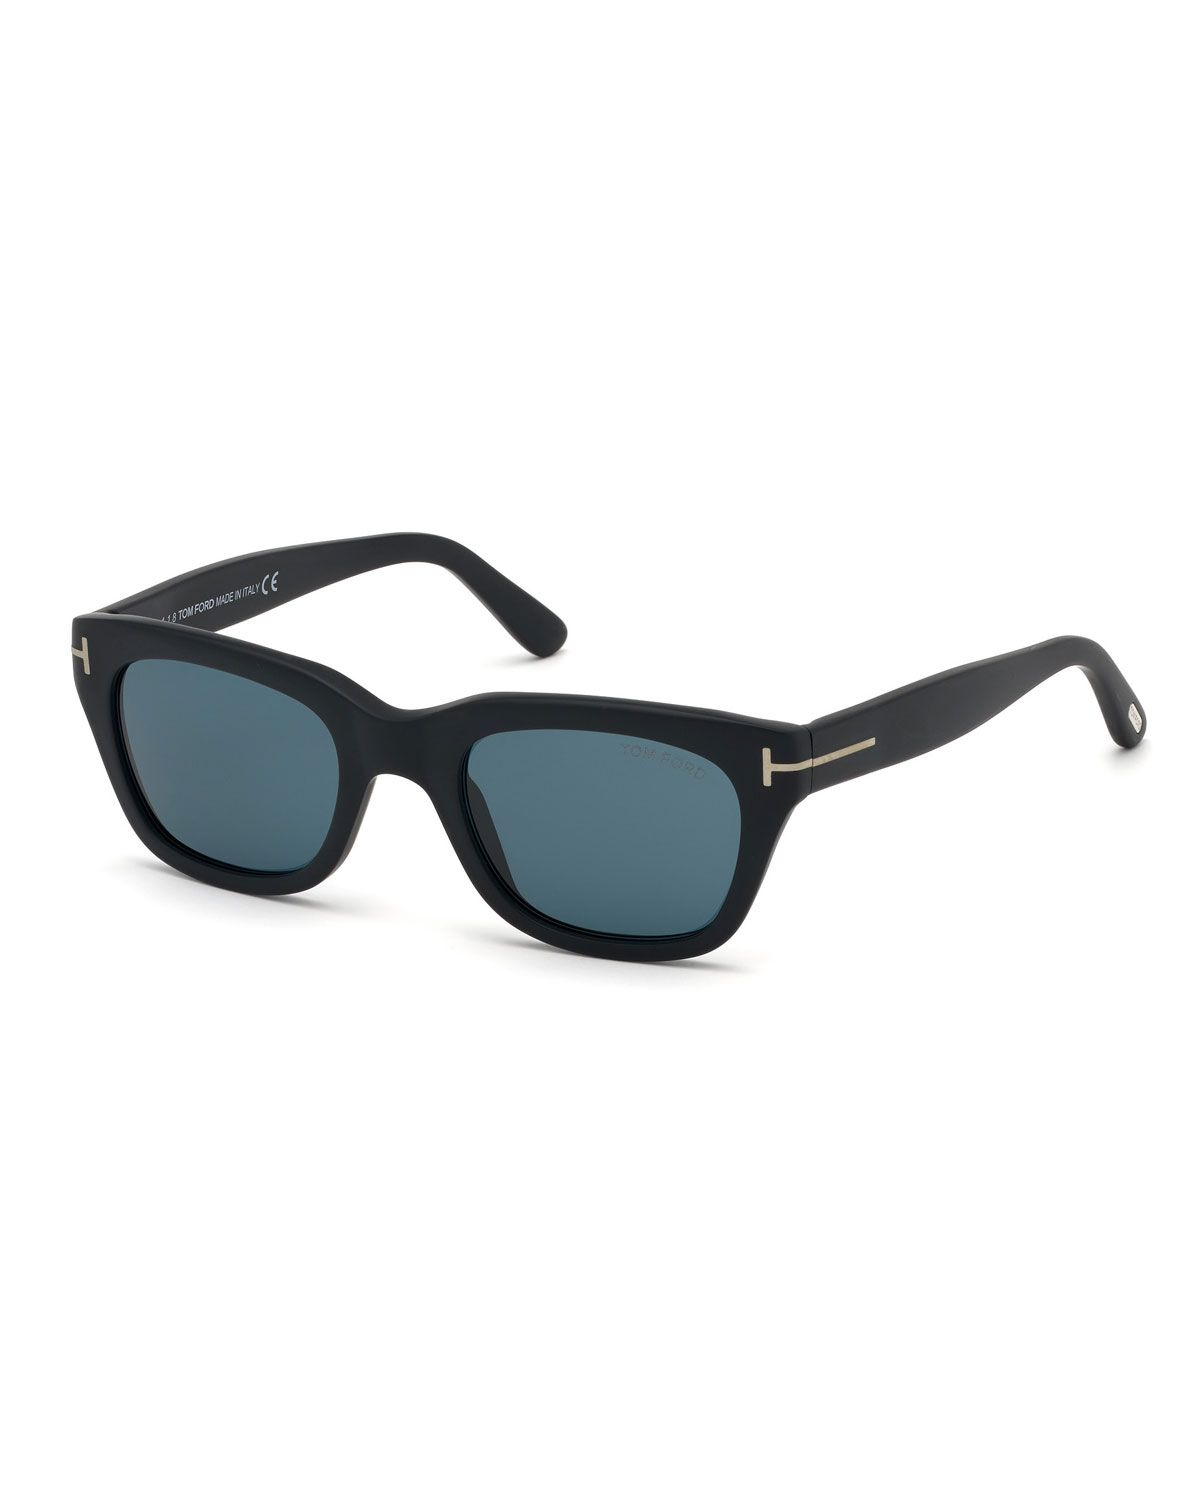 0bd98a3f68 TOM FORD MEN S SNOWDON SQUARE PLASTIC SUNGLASSES.  tomford